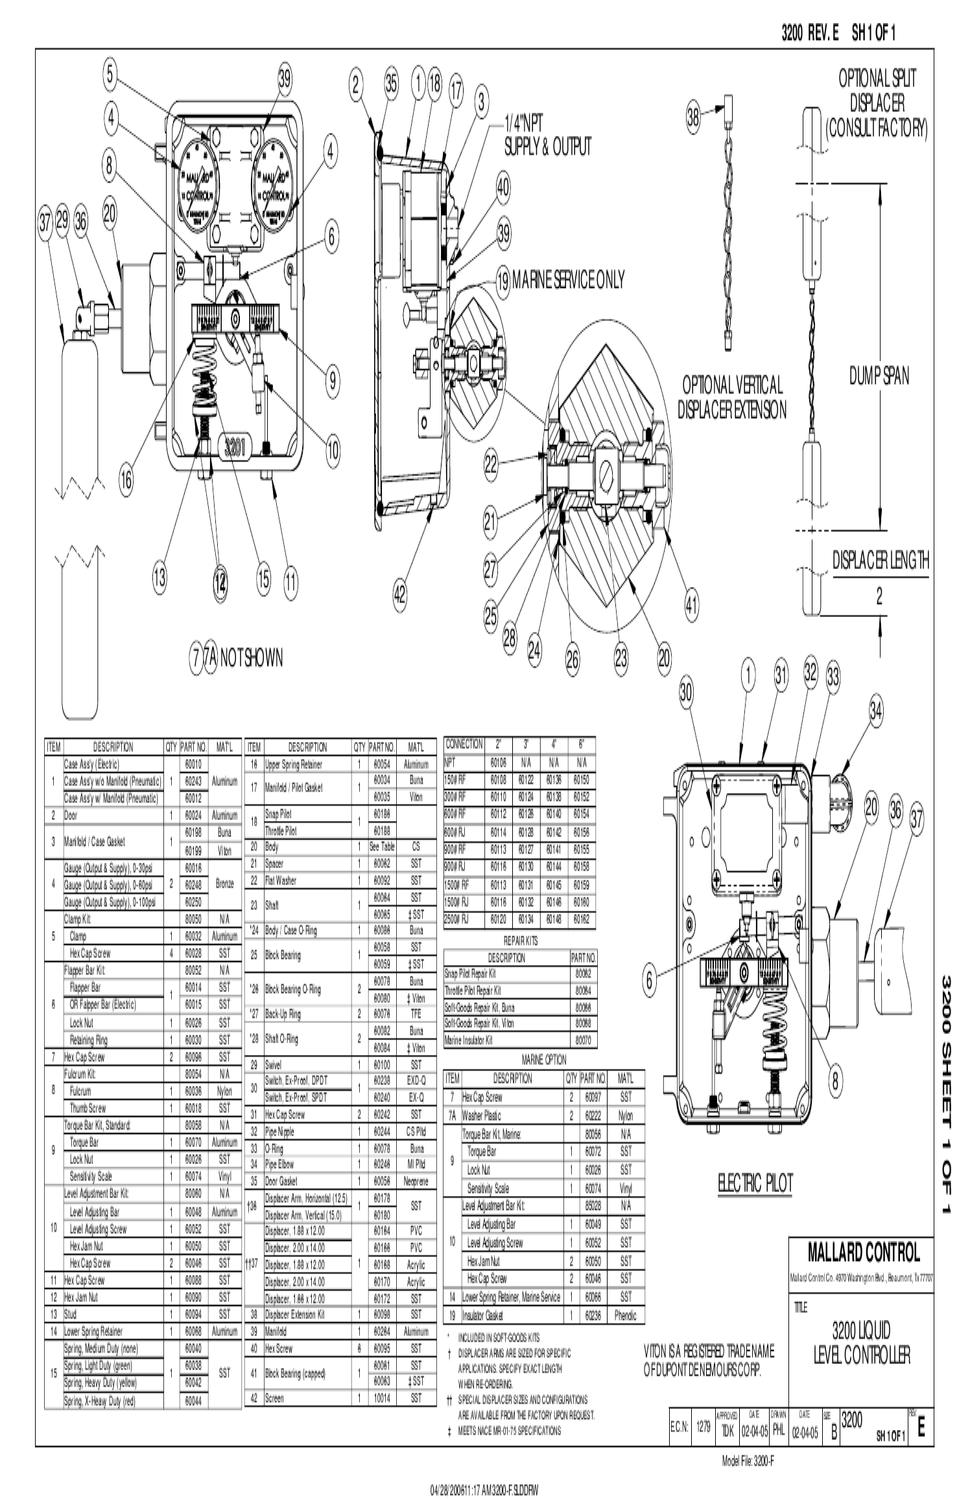 3200 LLC Schematic by RMC Process Controls & Filtration